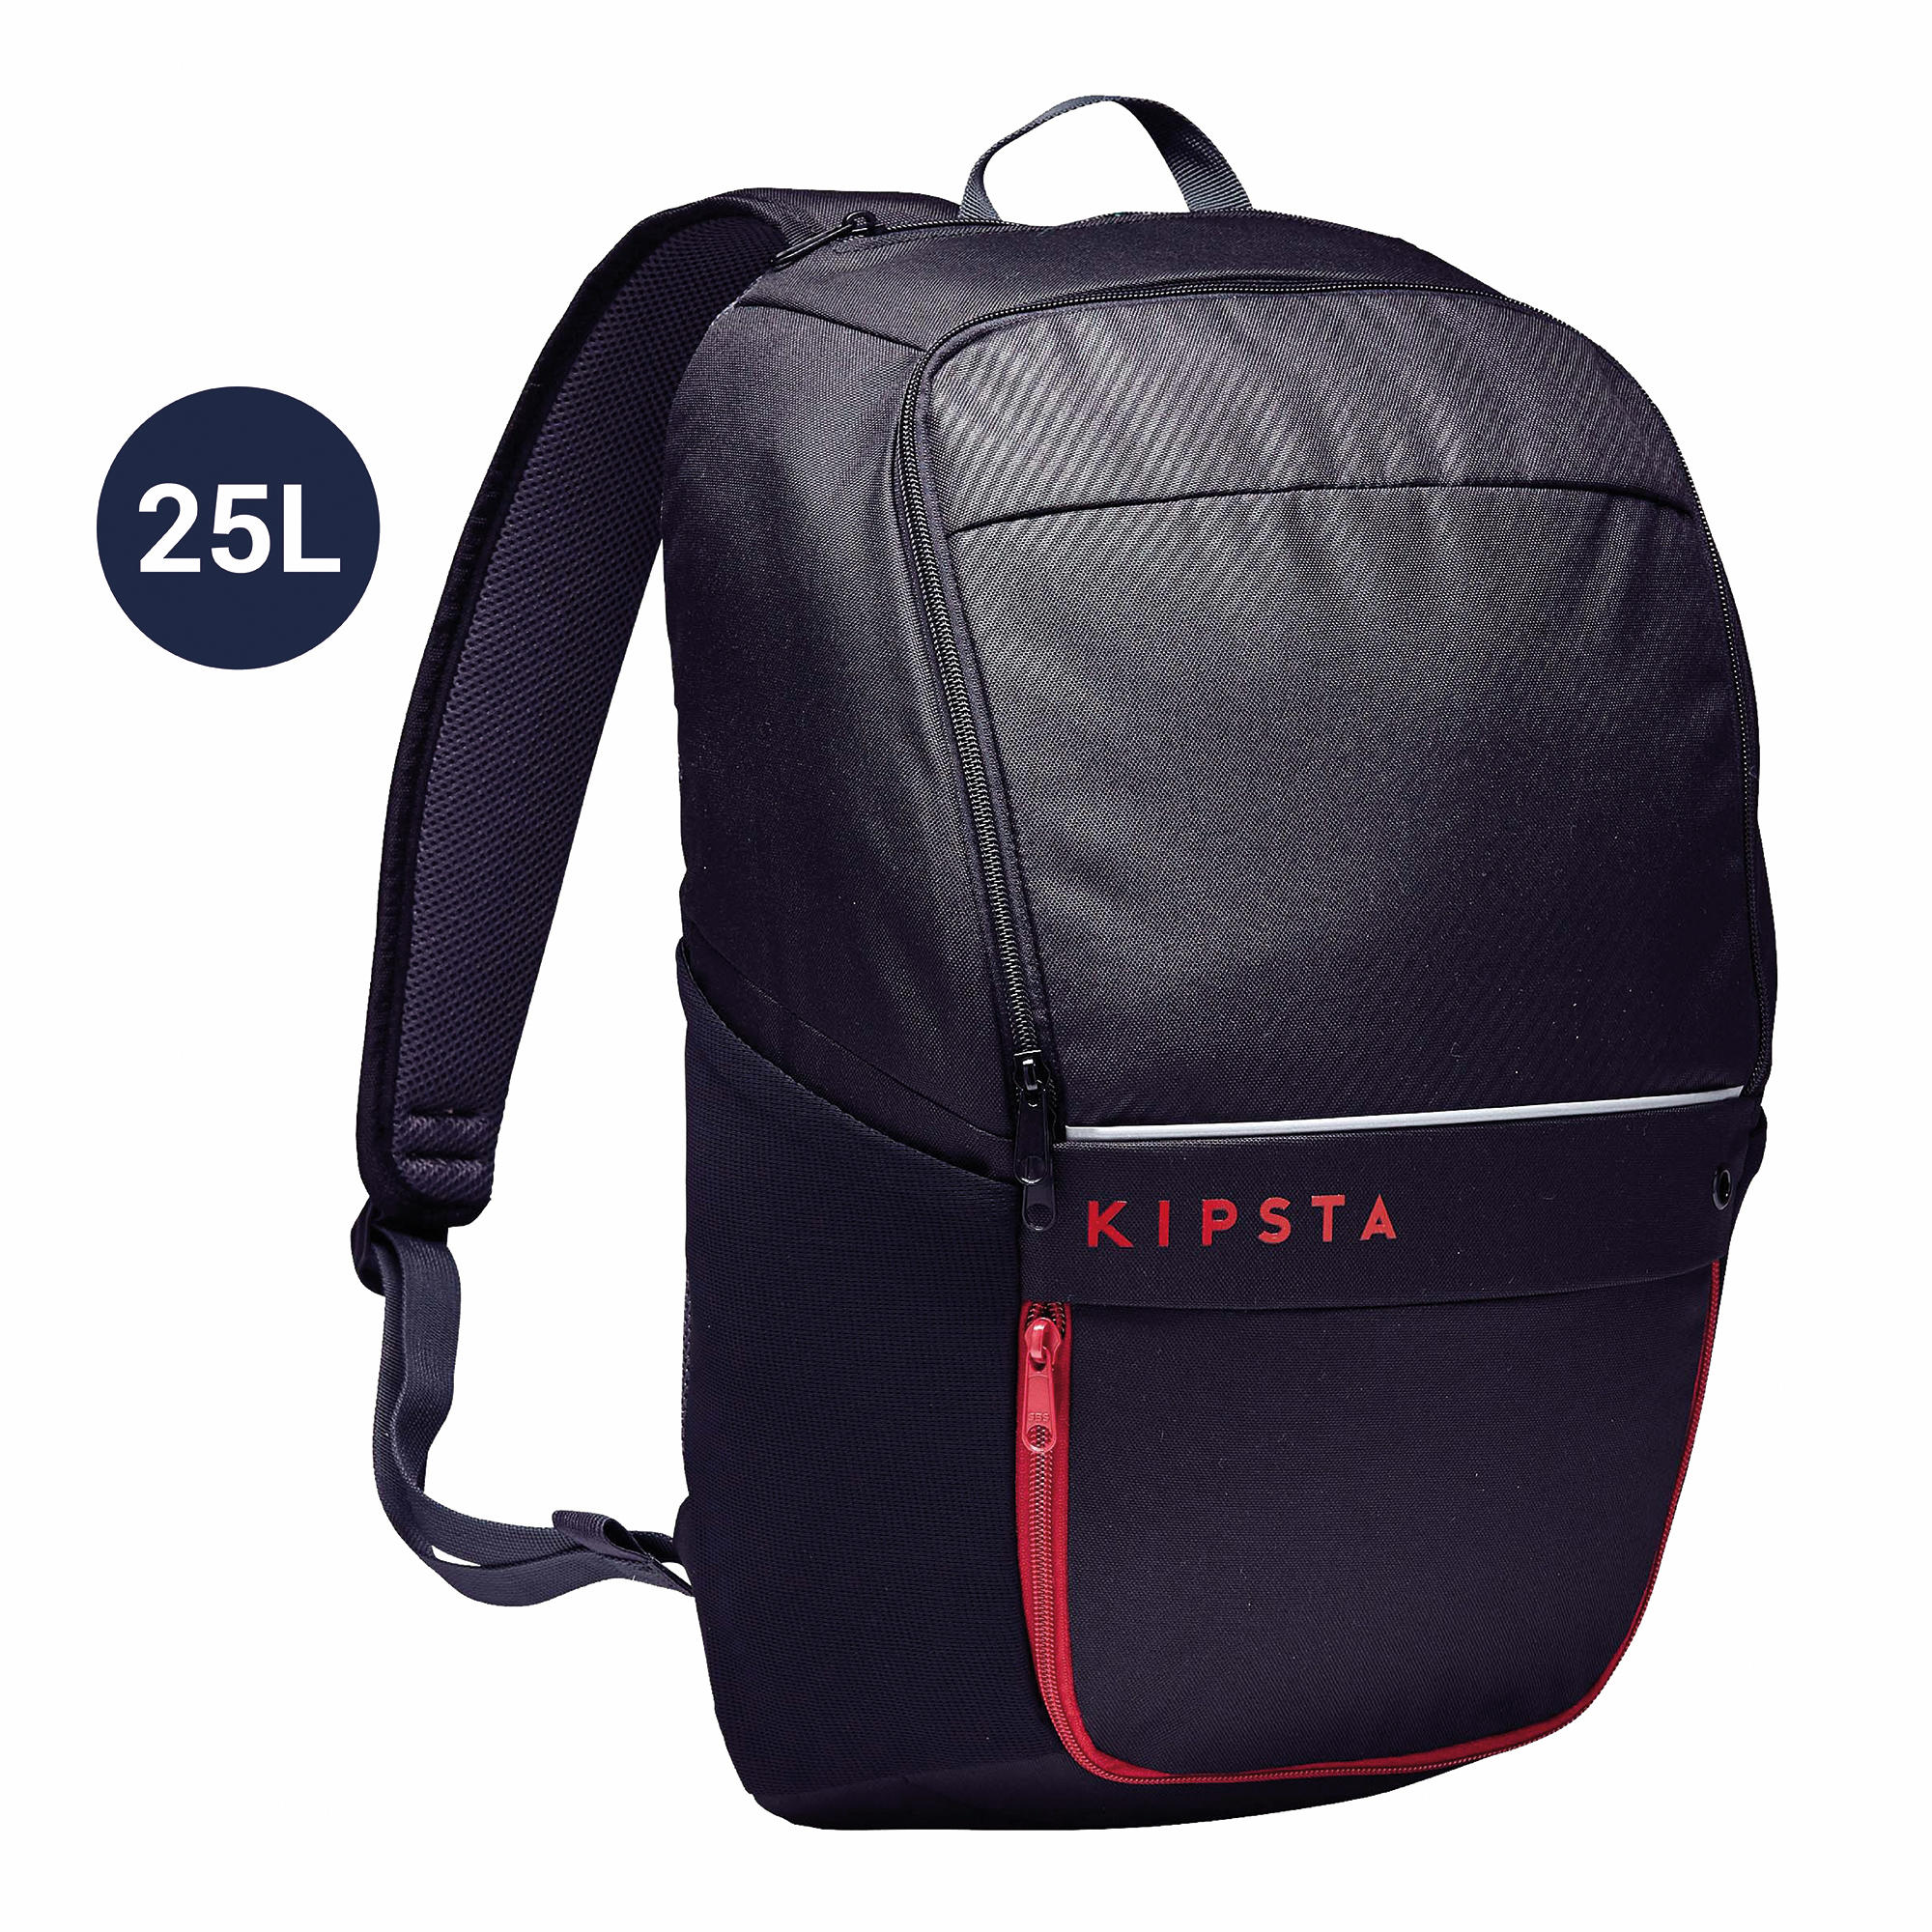 Classic 25 L Team Sports Backpack - Black / Carbon Grey